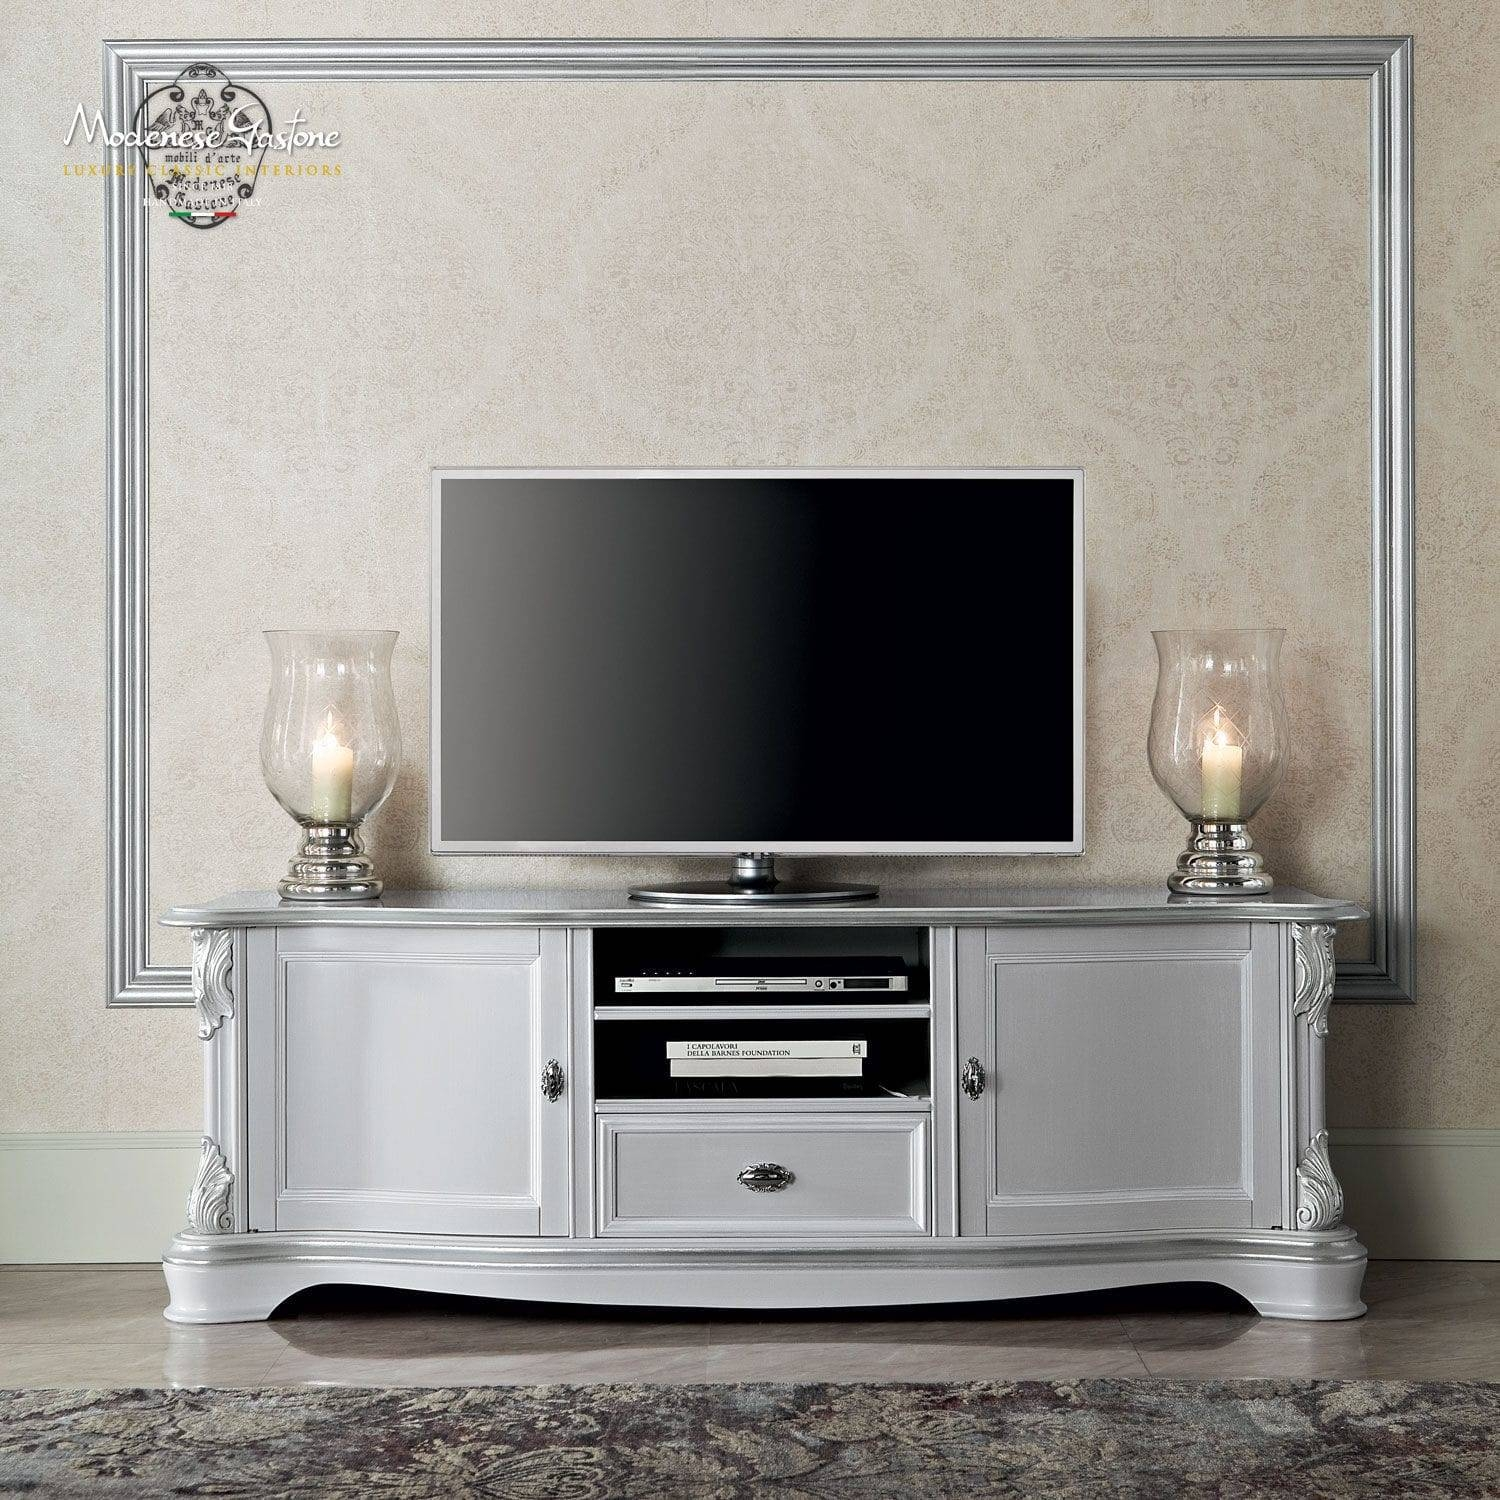 Classic Tv Cabinet / Solid Wood – Bella Vita – Modenese Gastone Throughout Classic Tv Cabinets (View 4 of 15)